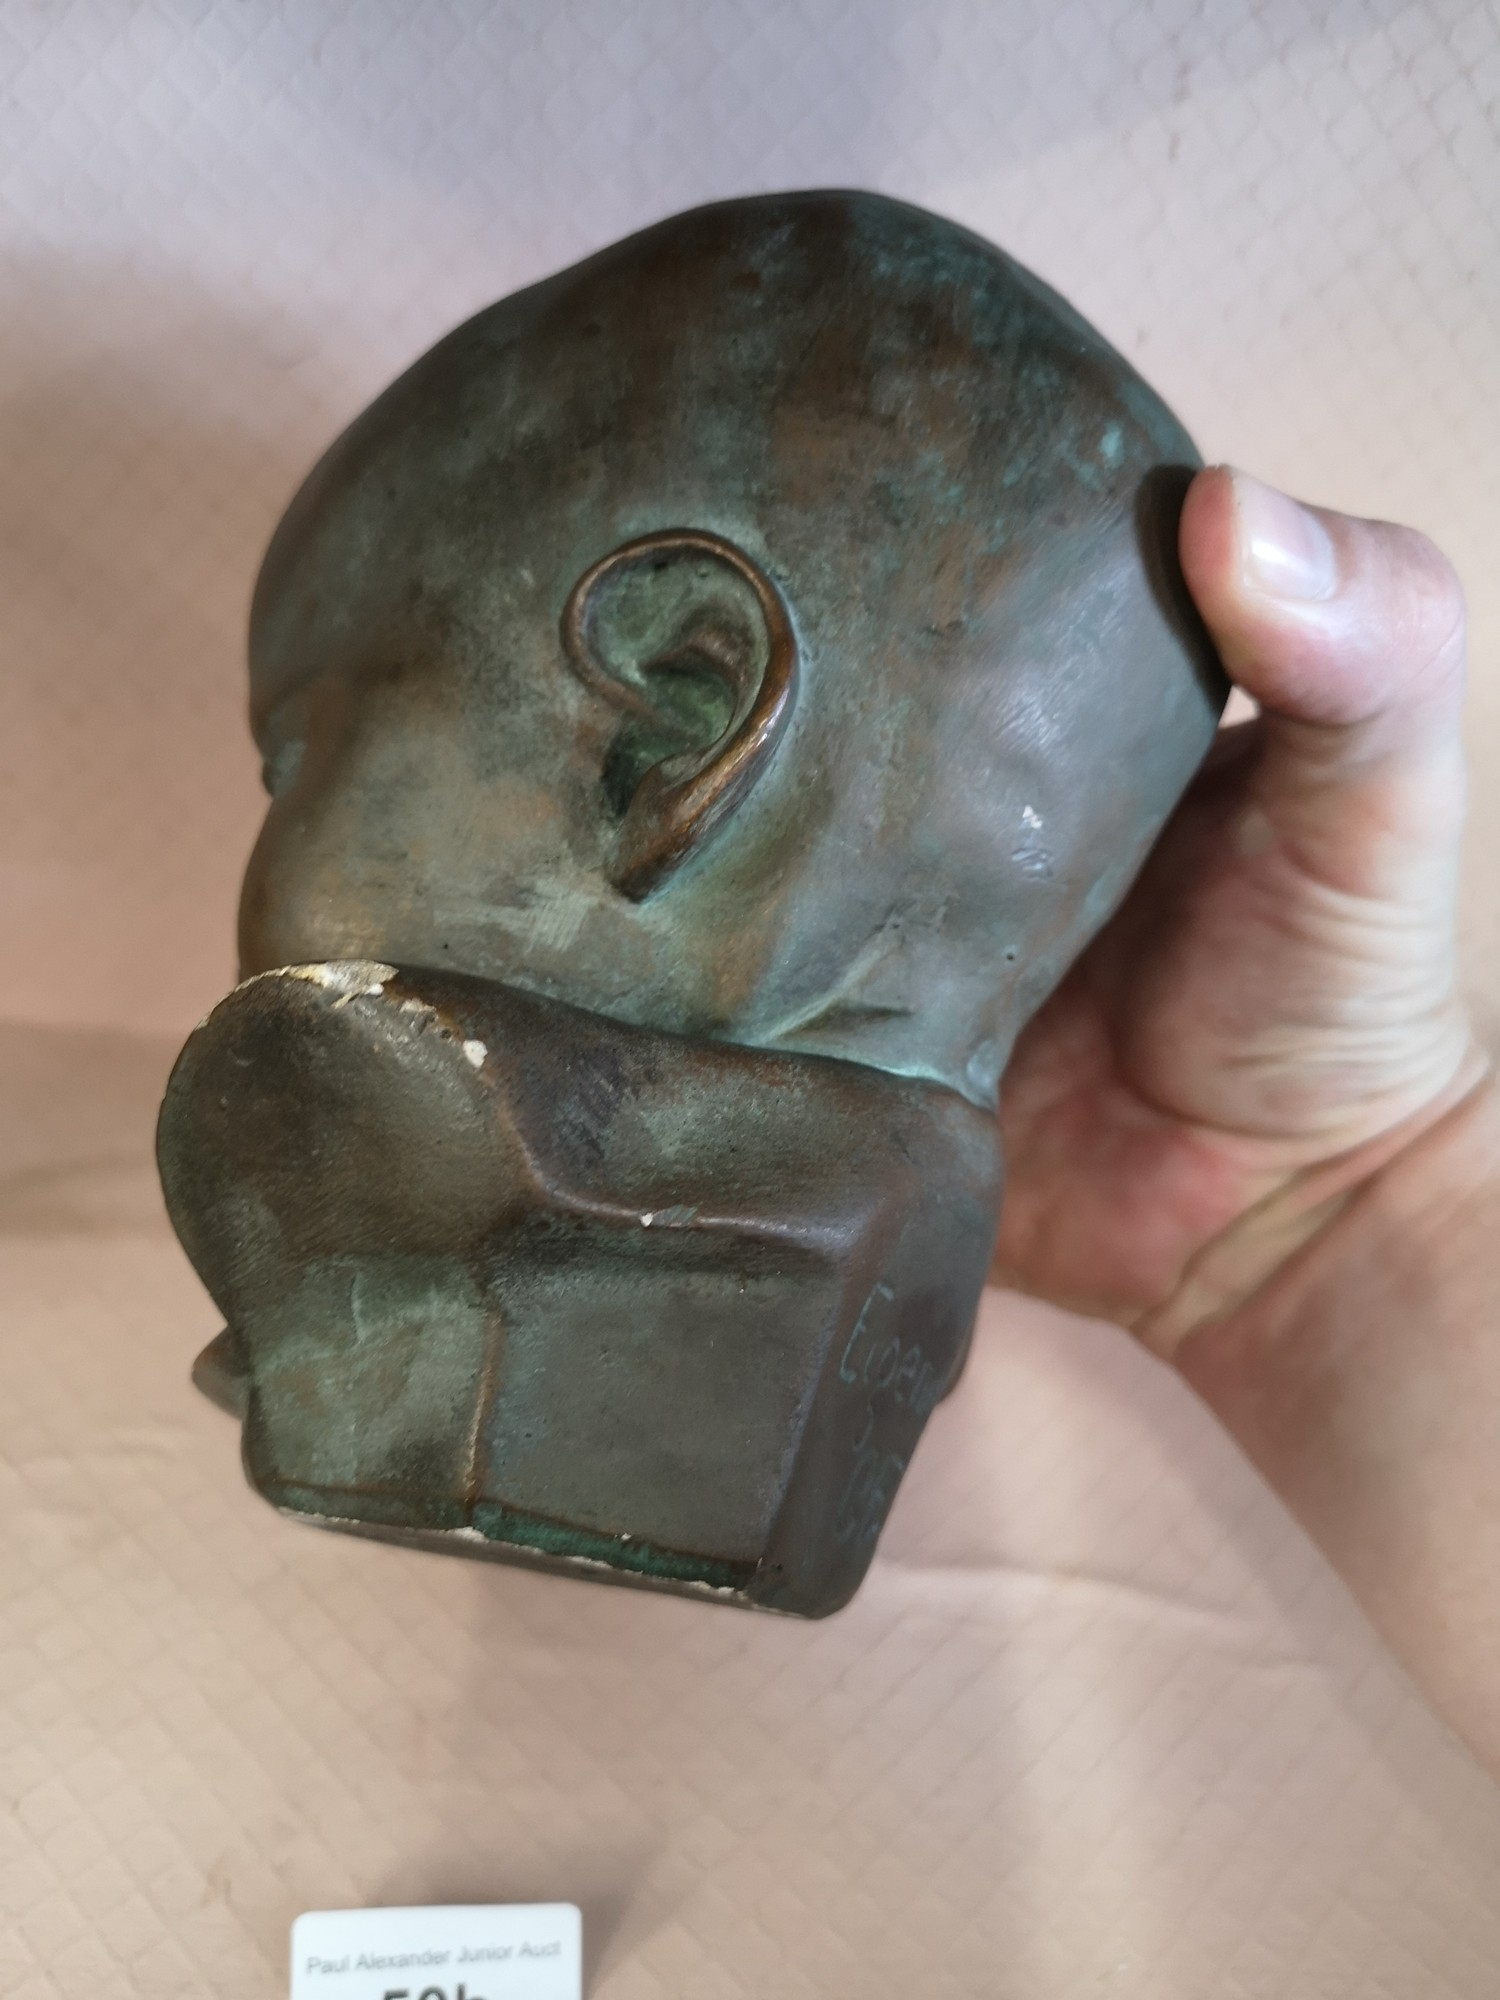 Eigendorn signed sculpture head with GFU intials. - Image 5 of 5